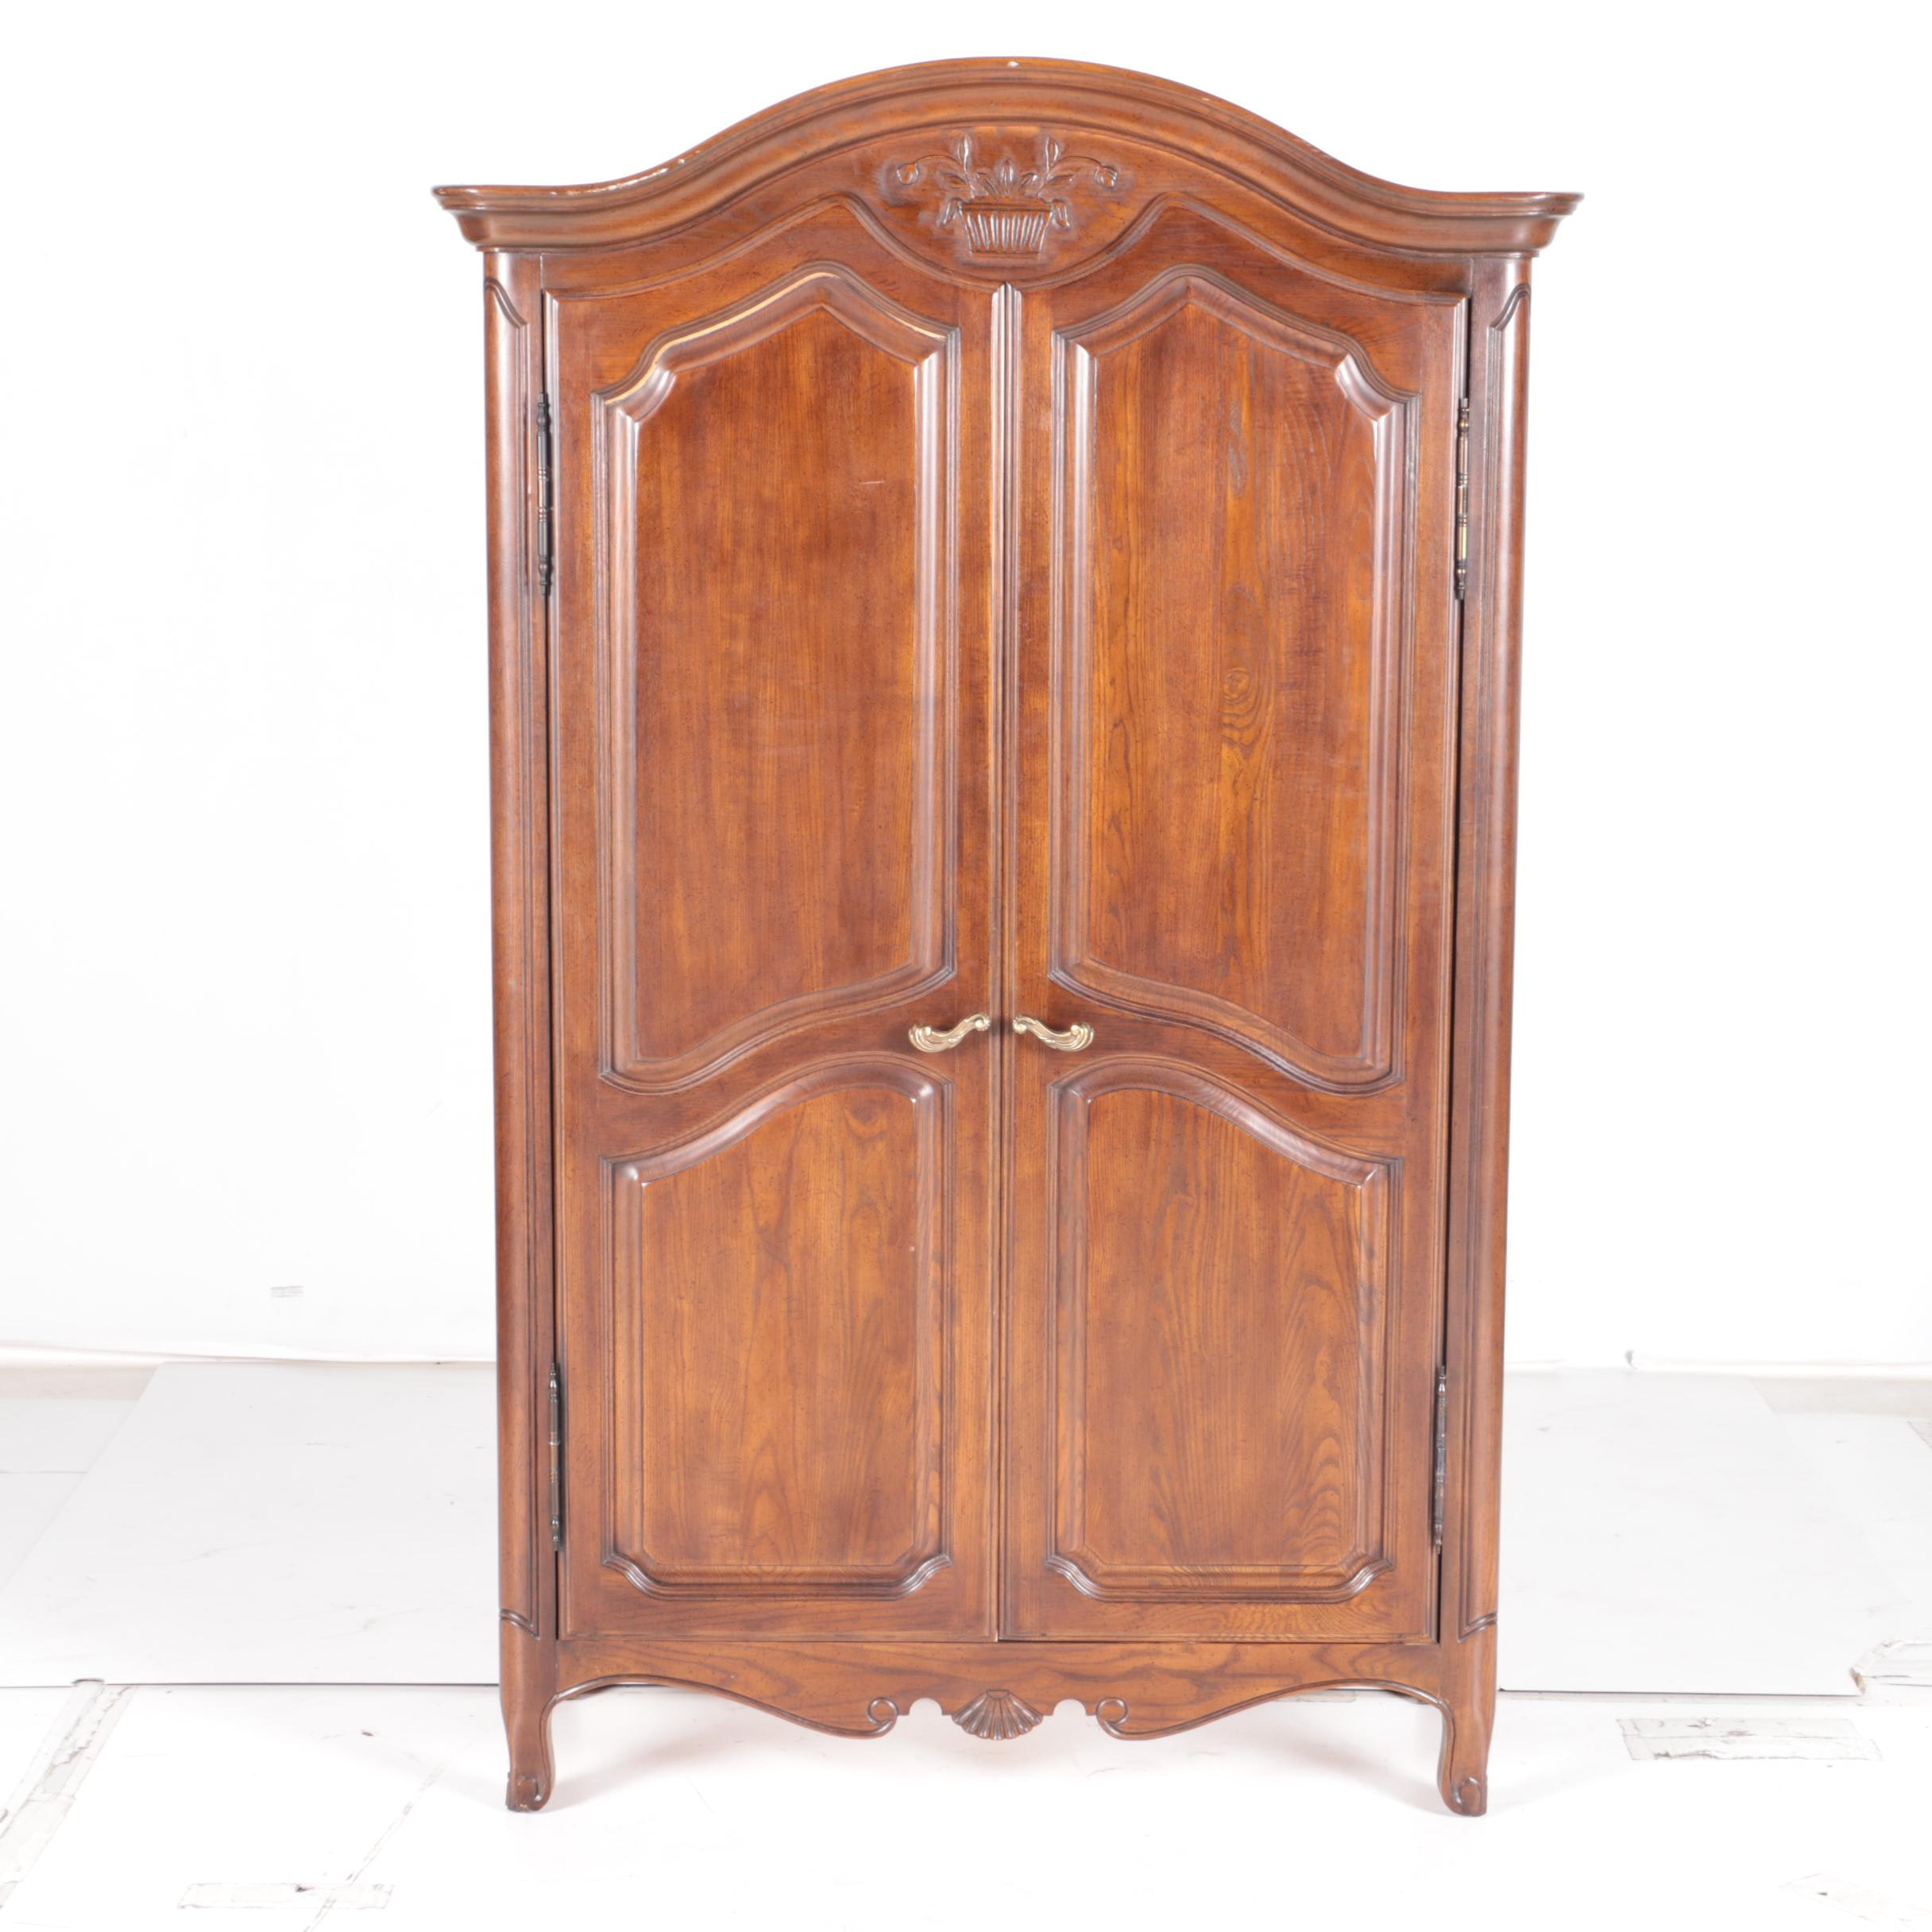 French Provincial Kitchen Cabinets: Davis Cabinet Company French Provincial